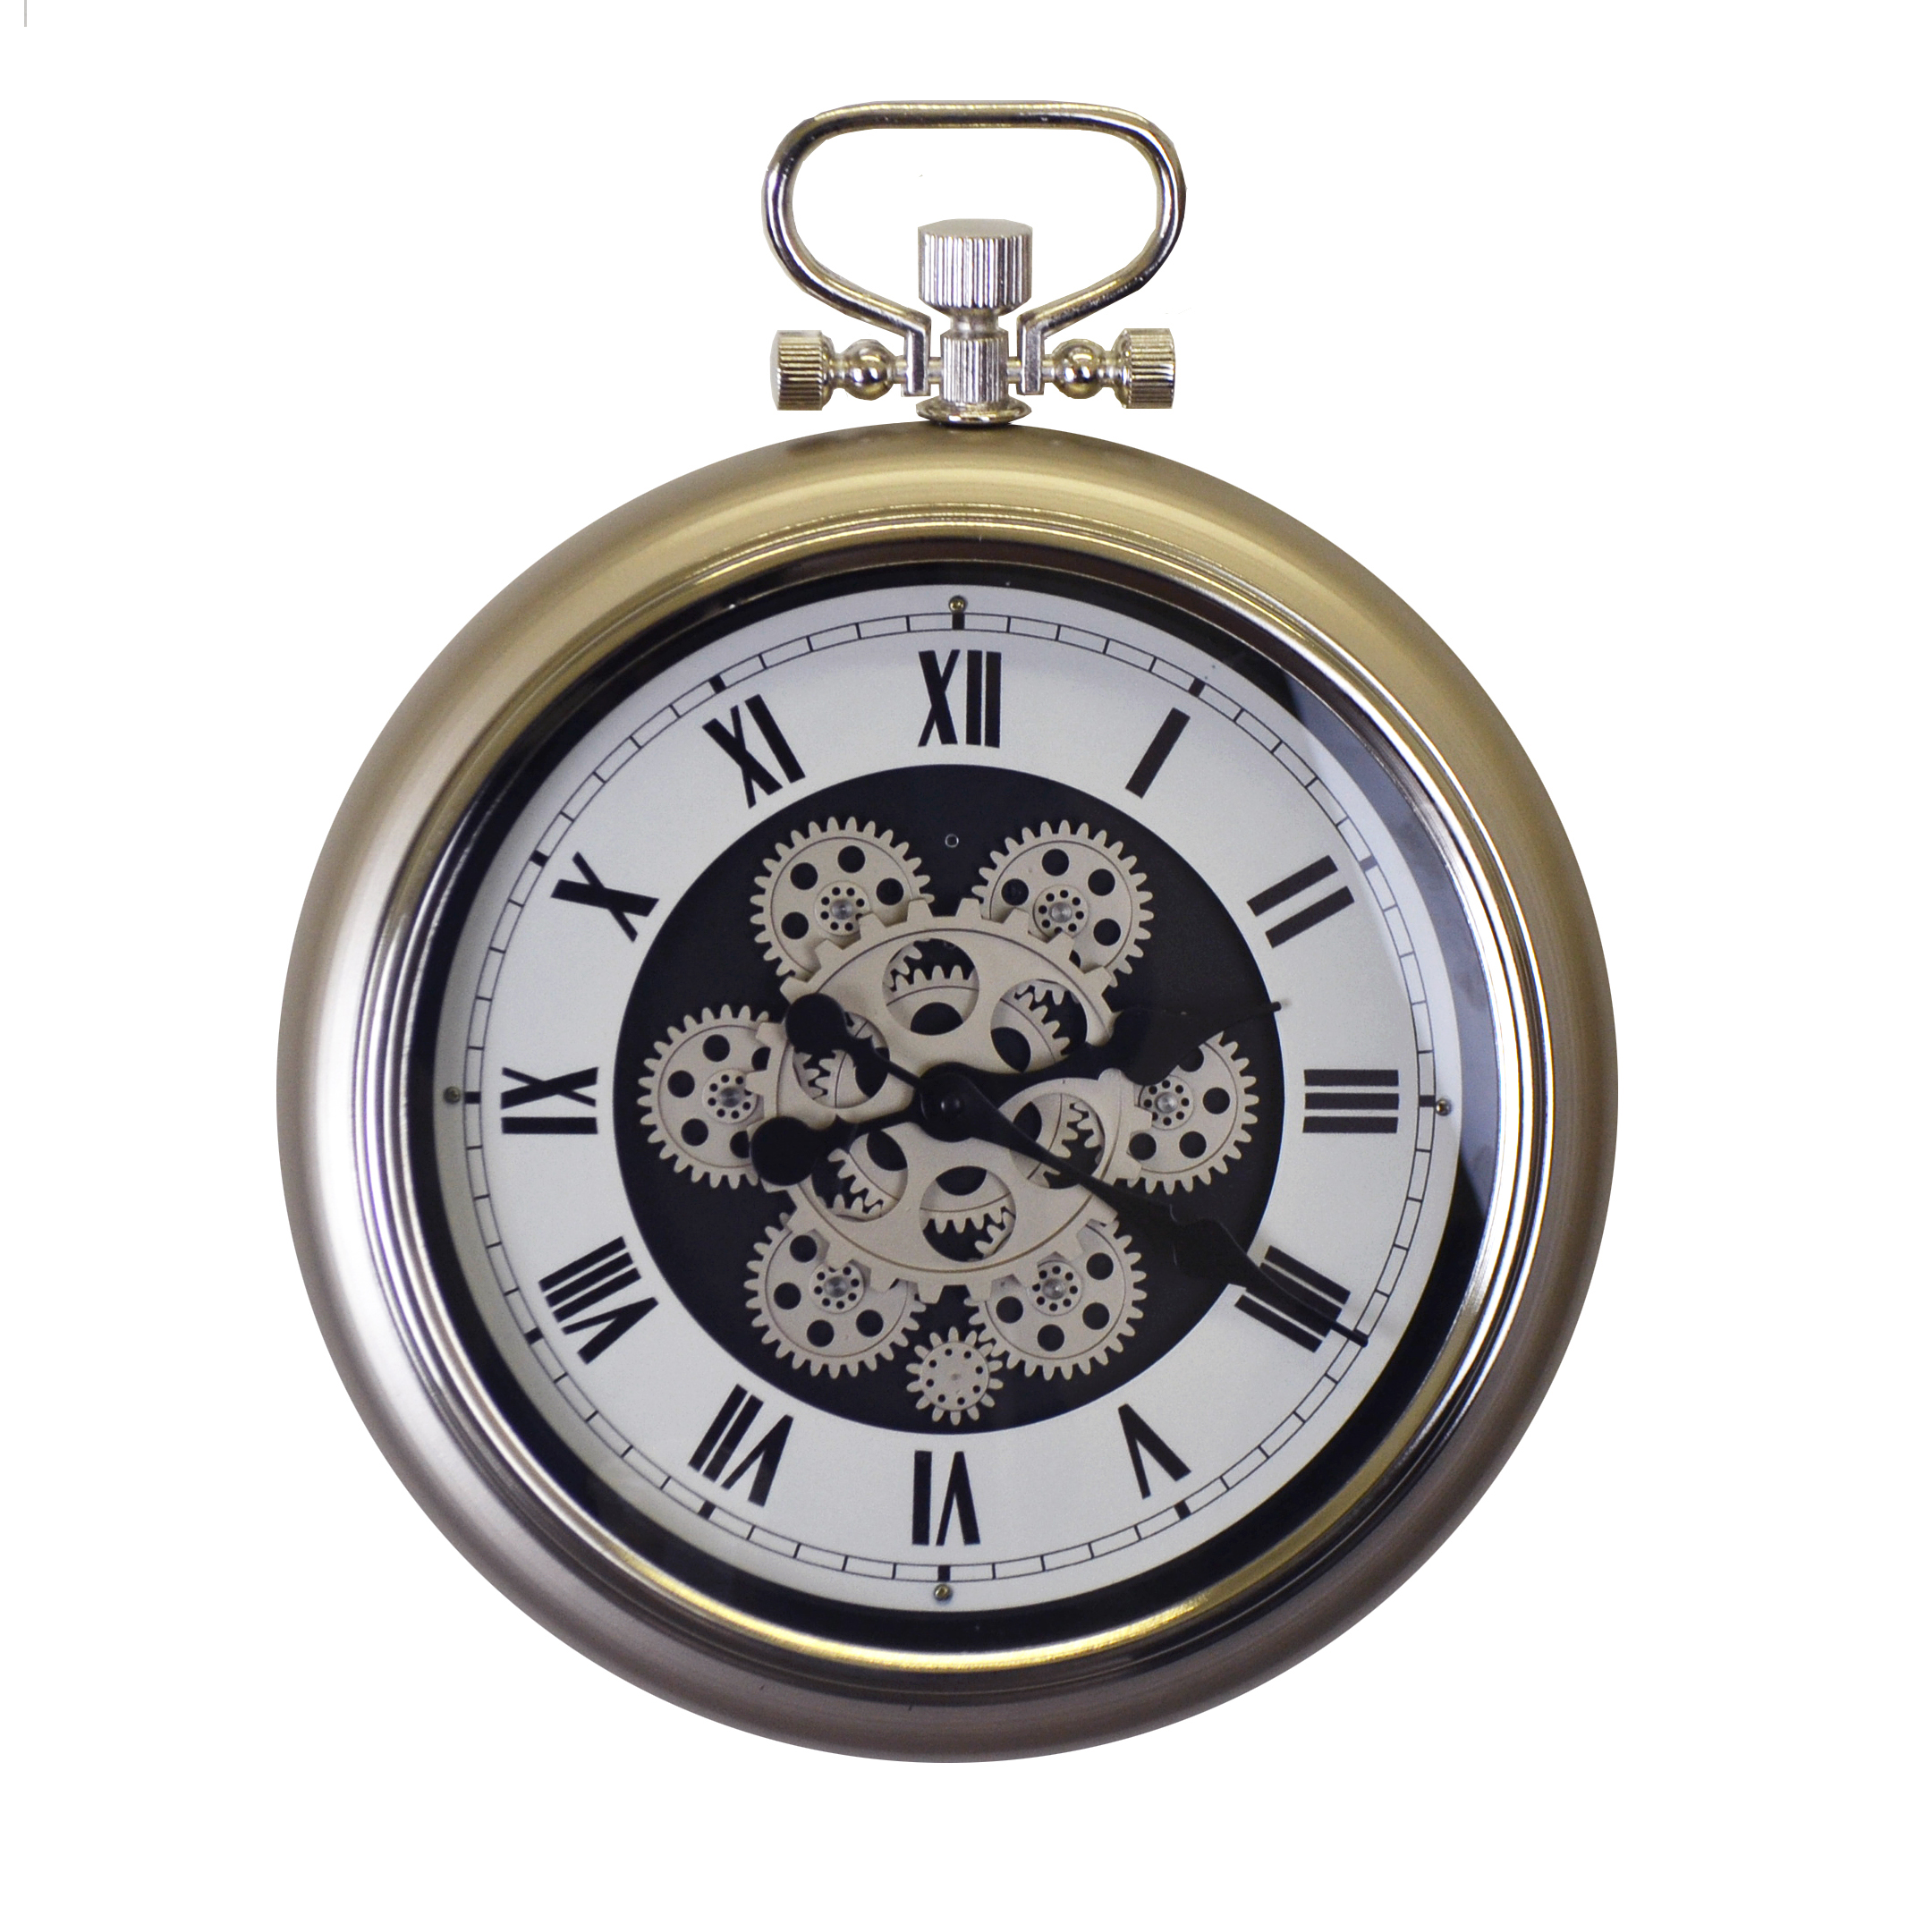 Moving Gears Champagne Color Metal Wall Clock Pocket Style w/Roman Numerals Battery Operated Wall Decor for Home Or Office